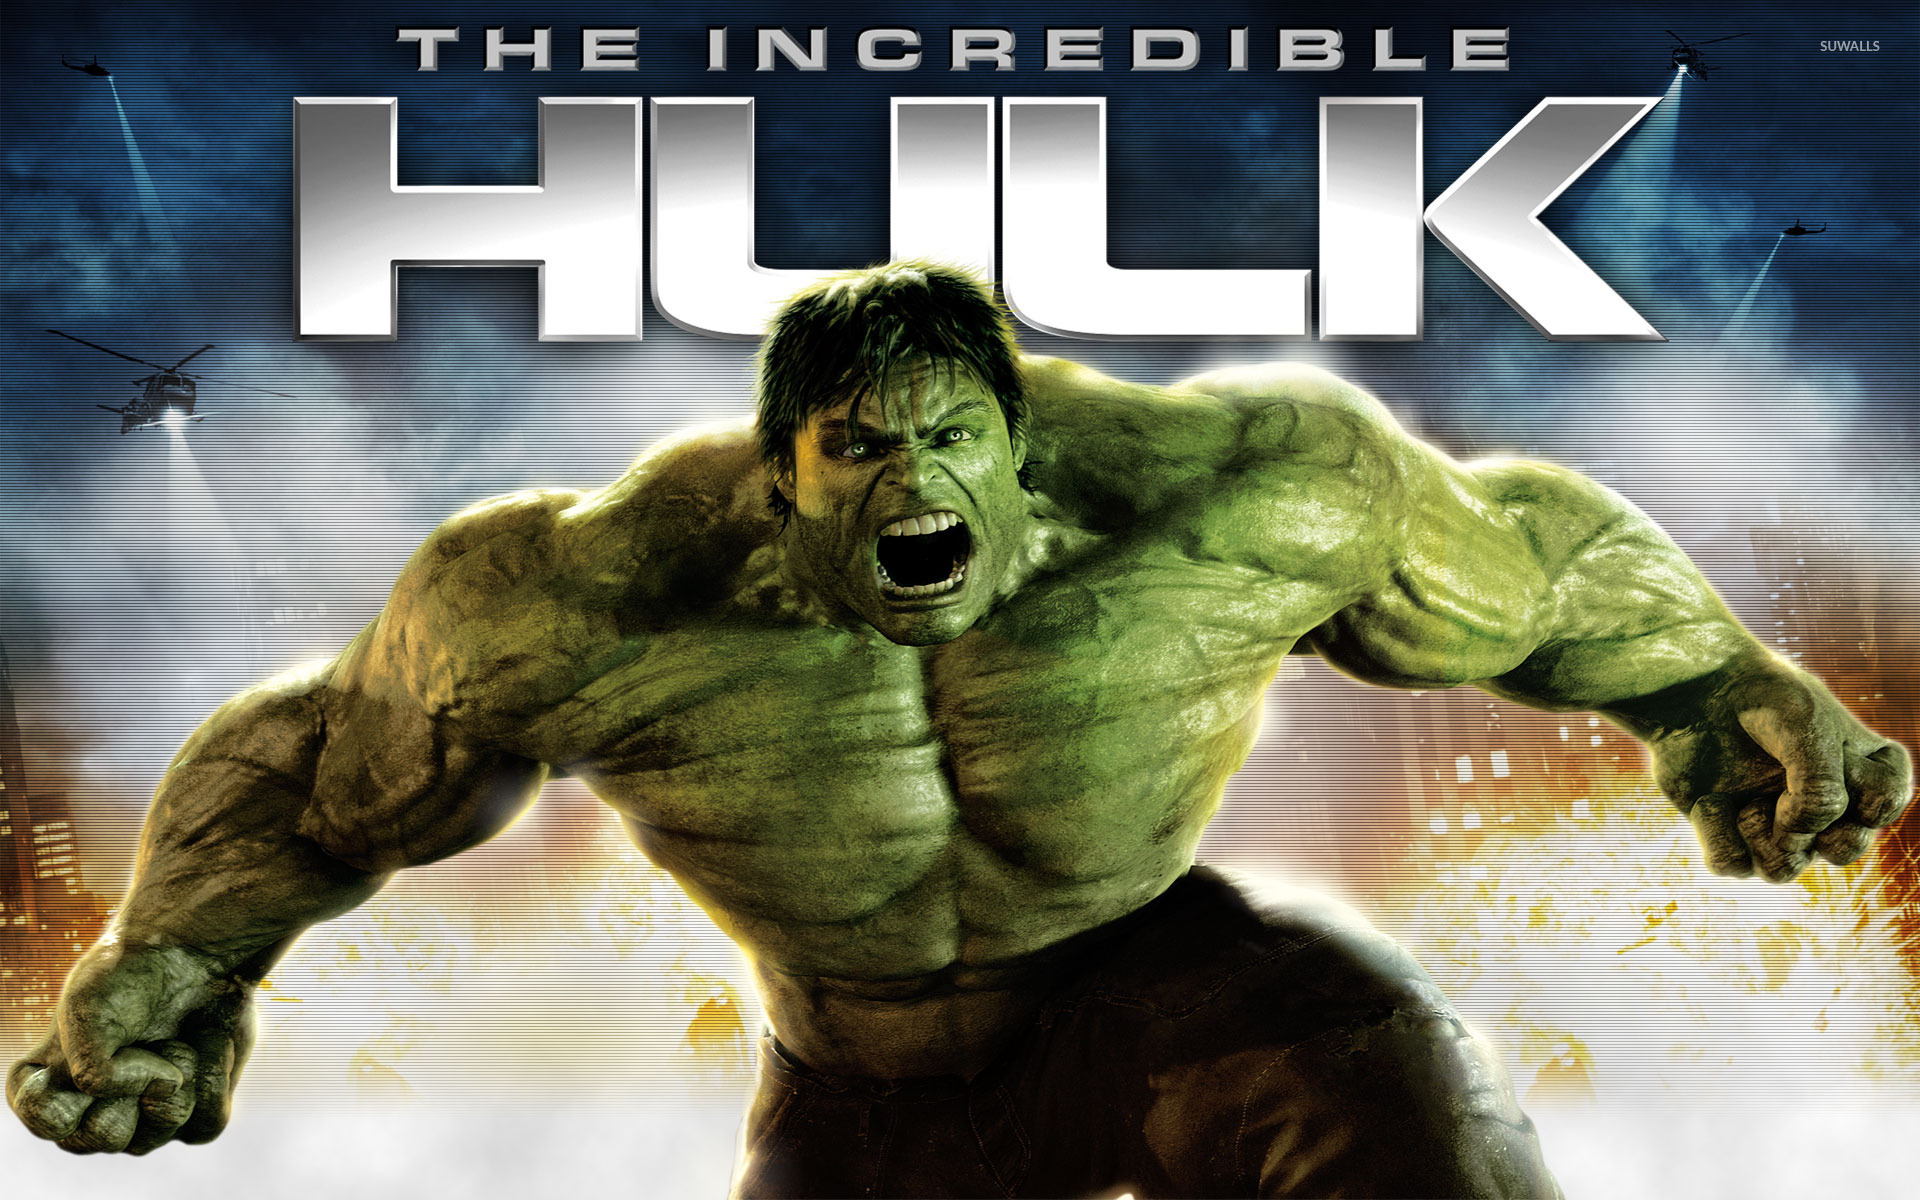 How to download the incredible hulk 2008 full version pc game for.